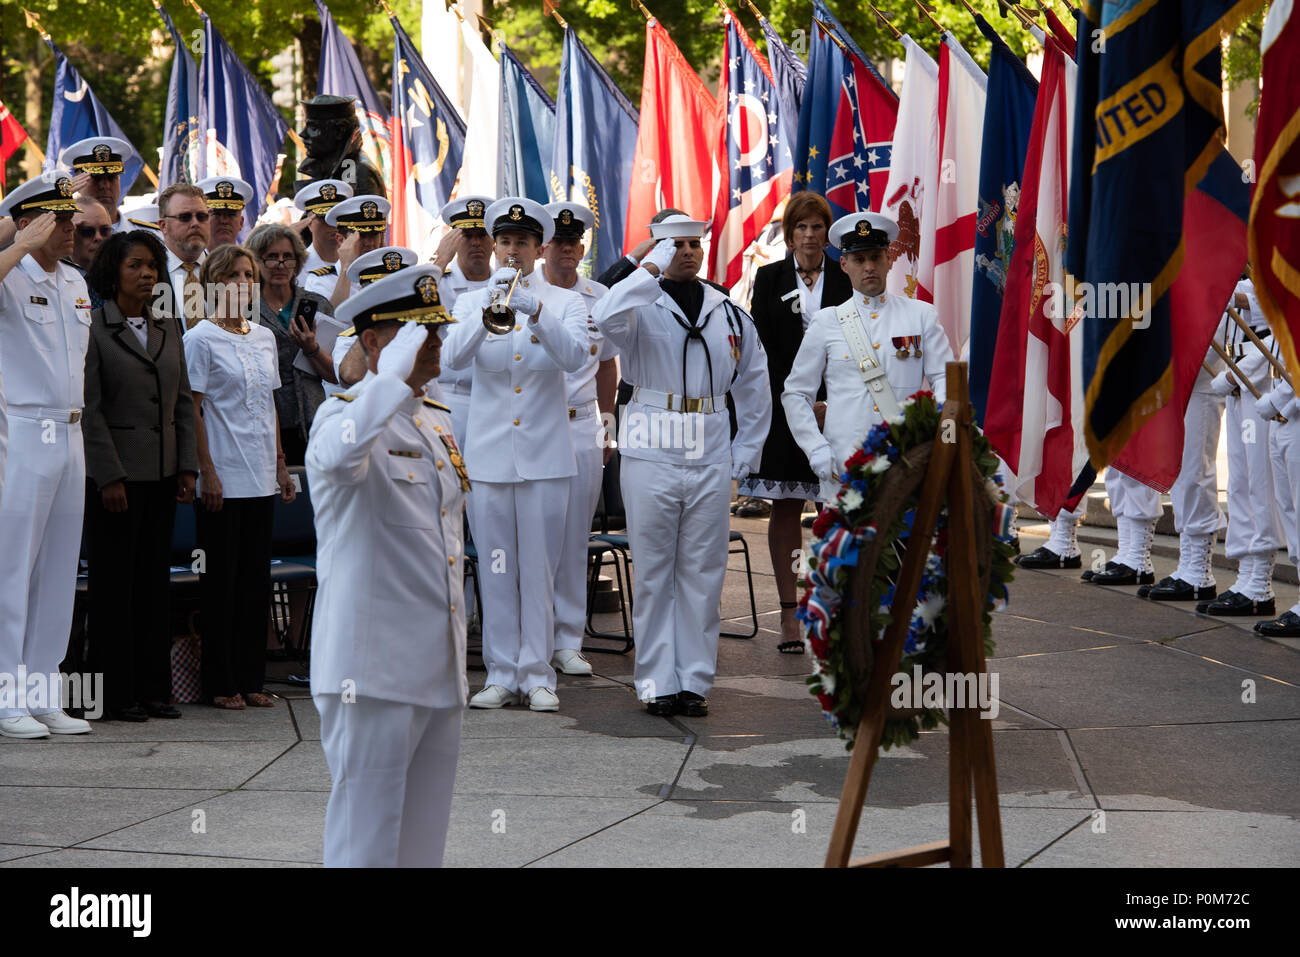 180605-N-HG258-1098 WASHINGTON (June 5, 2018) The Vice Chief of Naval Operations, Adm. Bill Moran lays a wreath at the U.S. Navy Memorial in Washington, D.C., during the commemoration of the 76th anniversary of the Battle of Midway. The Battle of Midway began on June 4 in 1942 and stands as one of the U.S. Navy's most historically significant naval battles. Fought on the high seas of the Pacific more than half a century ago, this battle altered the course of the war in the Pacific and thereby shaped the outcome of world events. (U.S. Navy photo by Senior Chief Musician Stephen Hassay/Released) - Stock Image